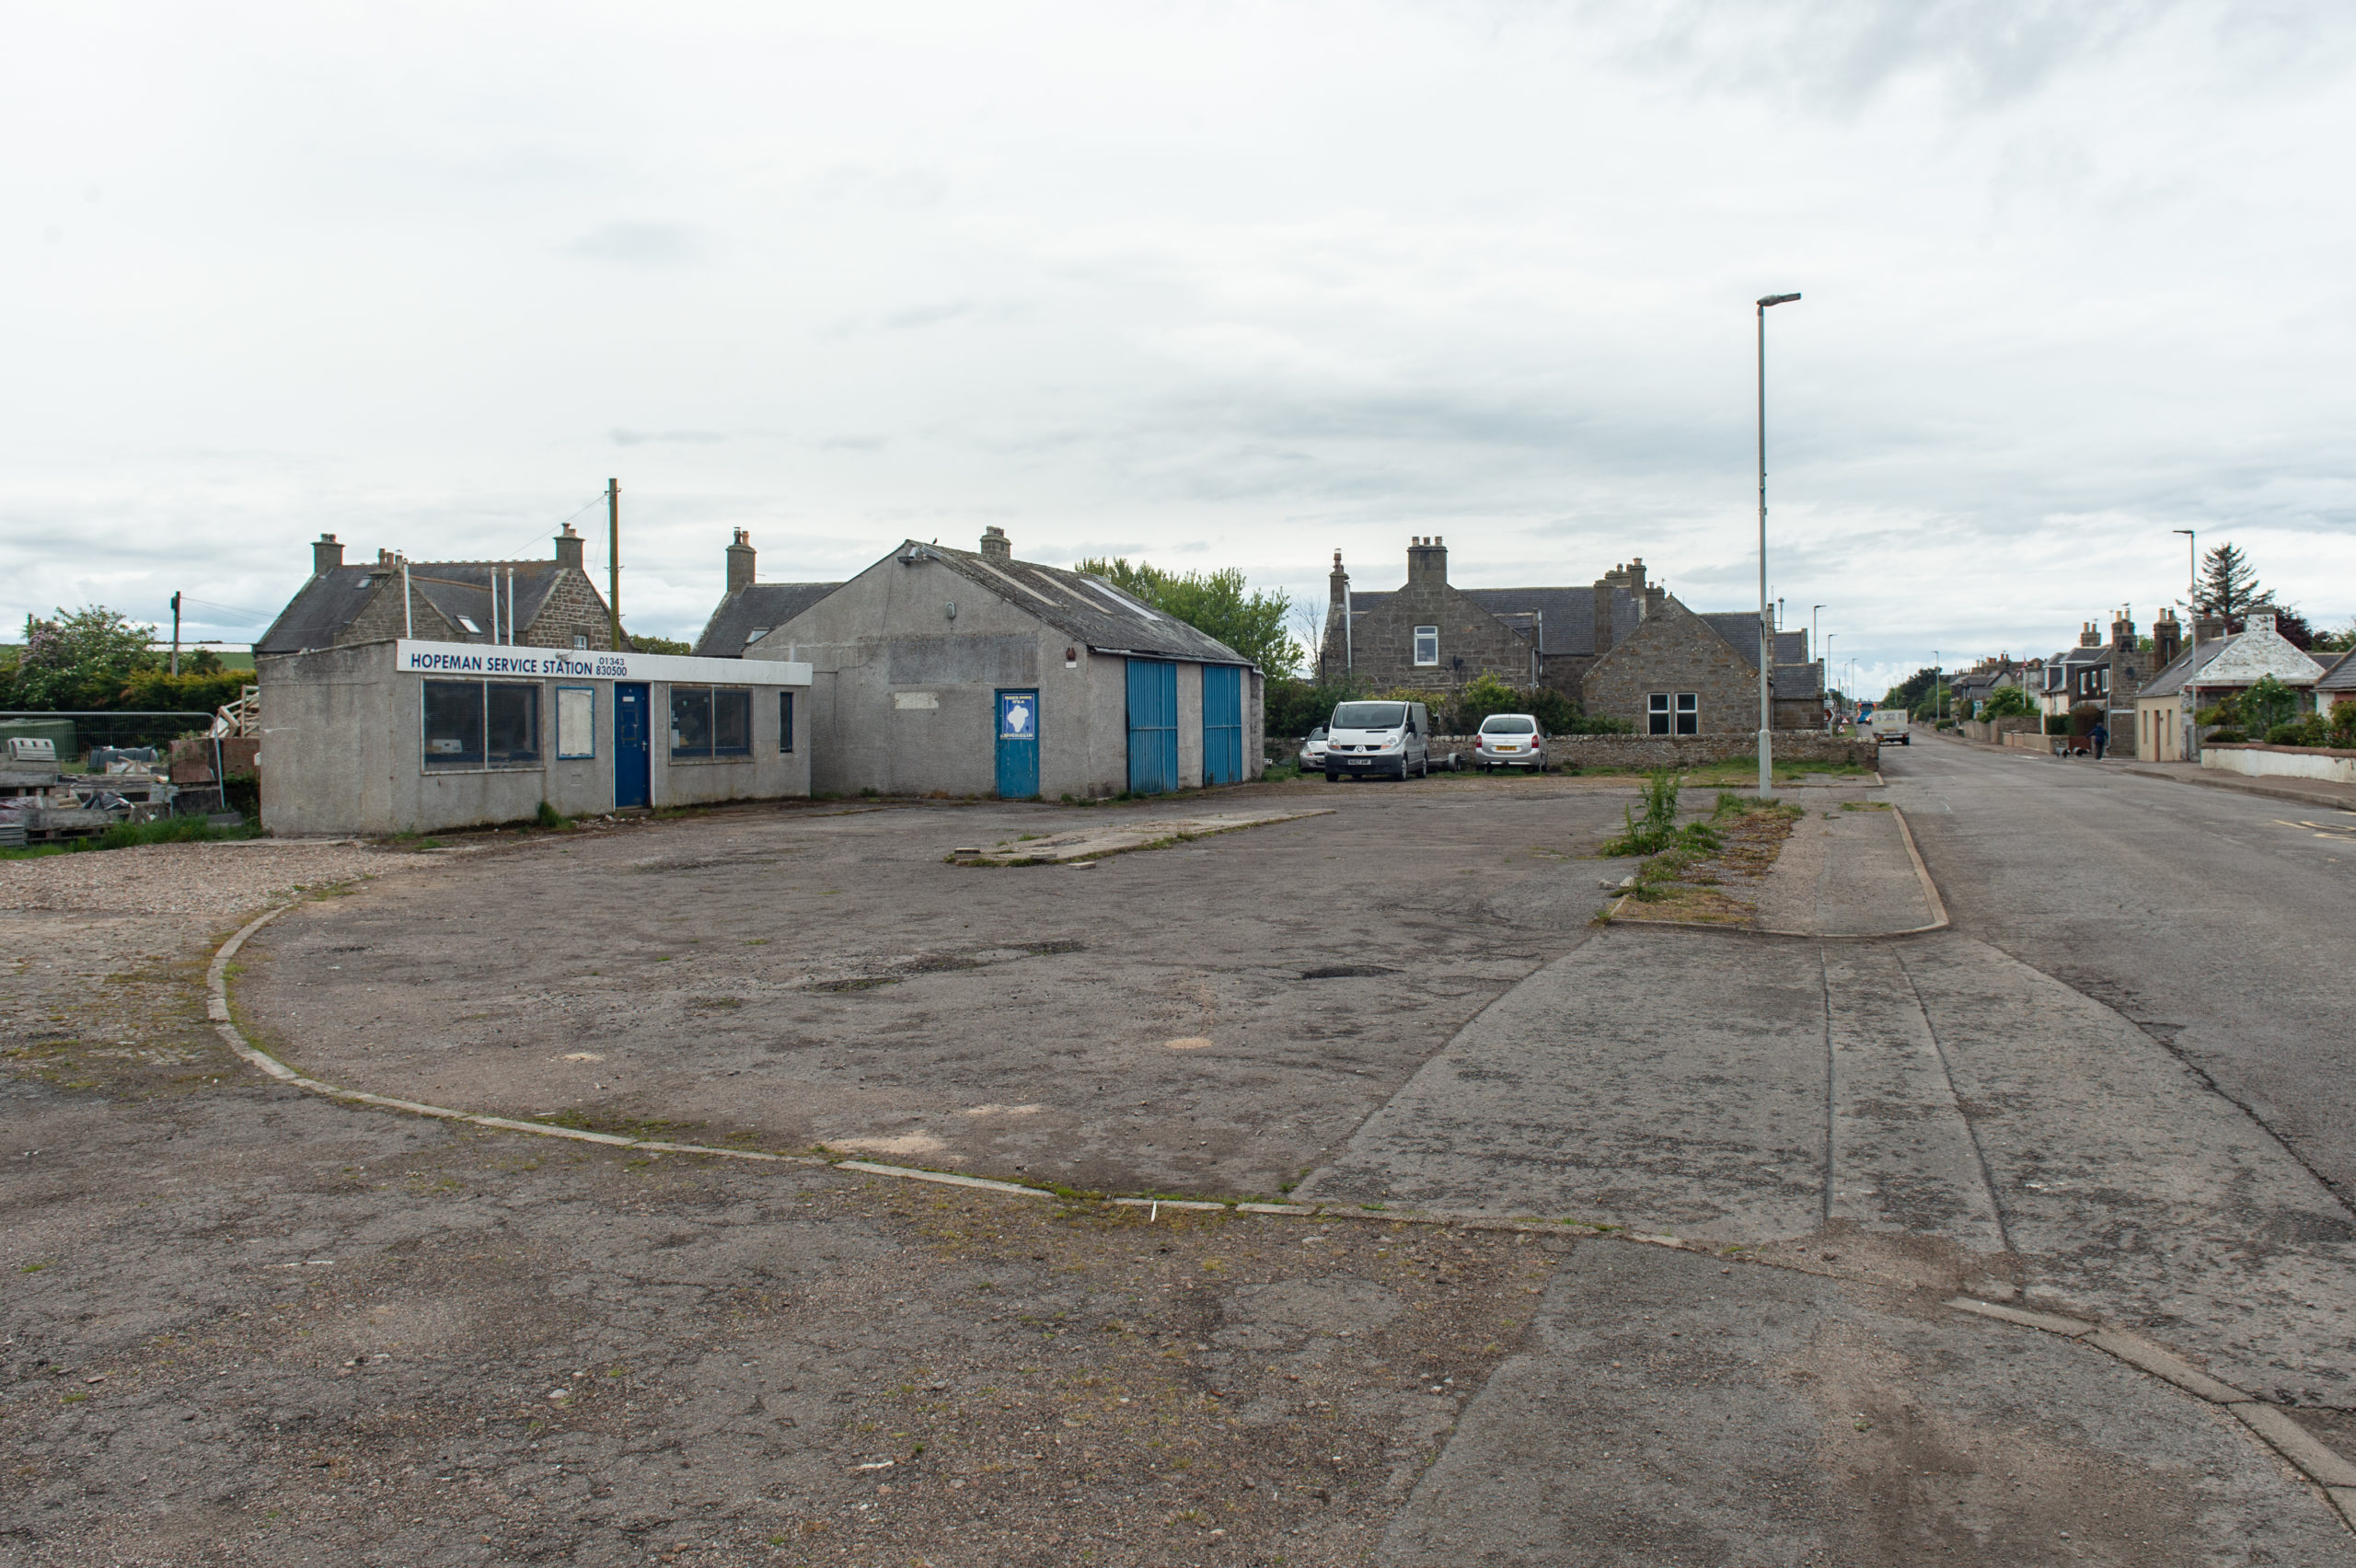 Springfield Properties wants to build flats on the site of the service station in Hopeman.